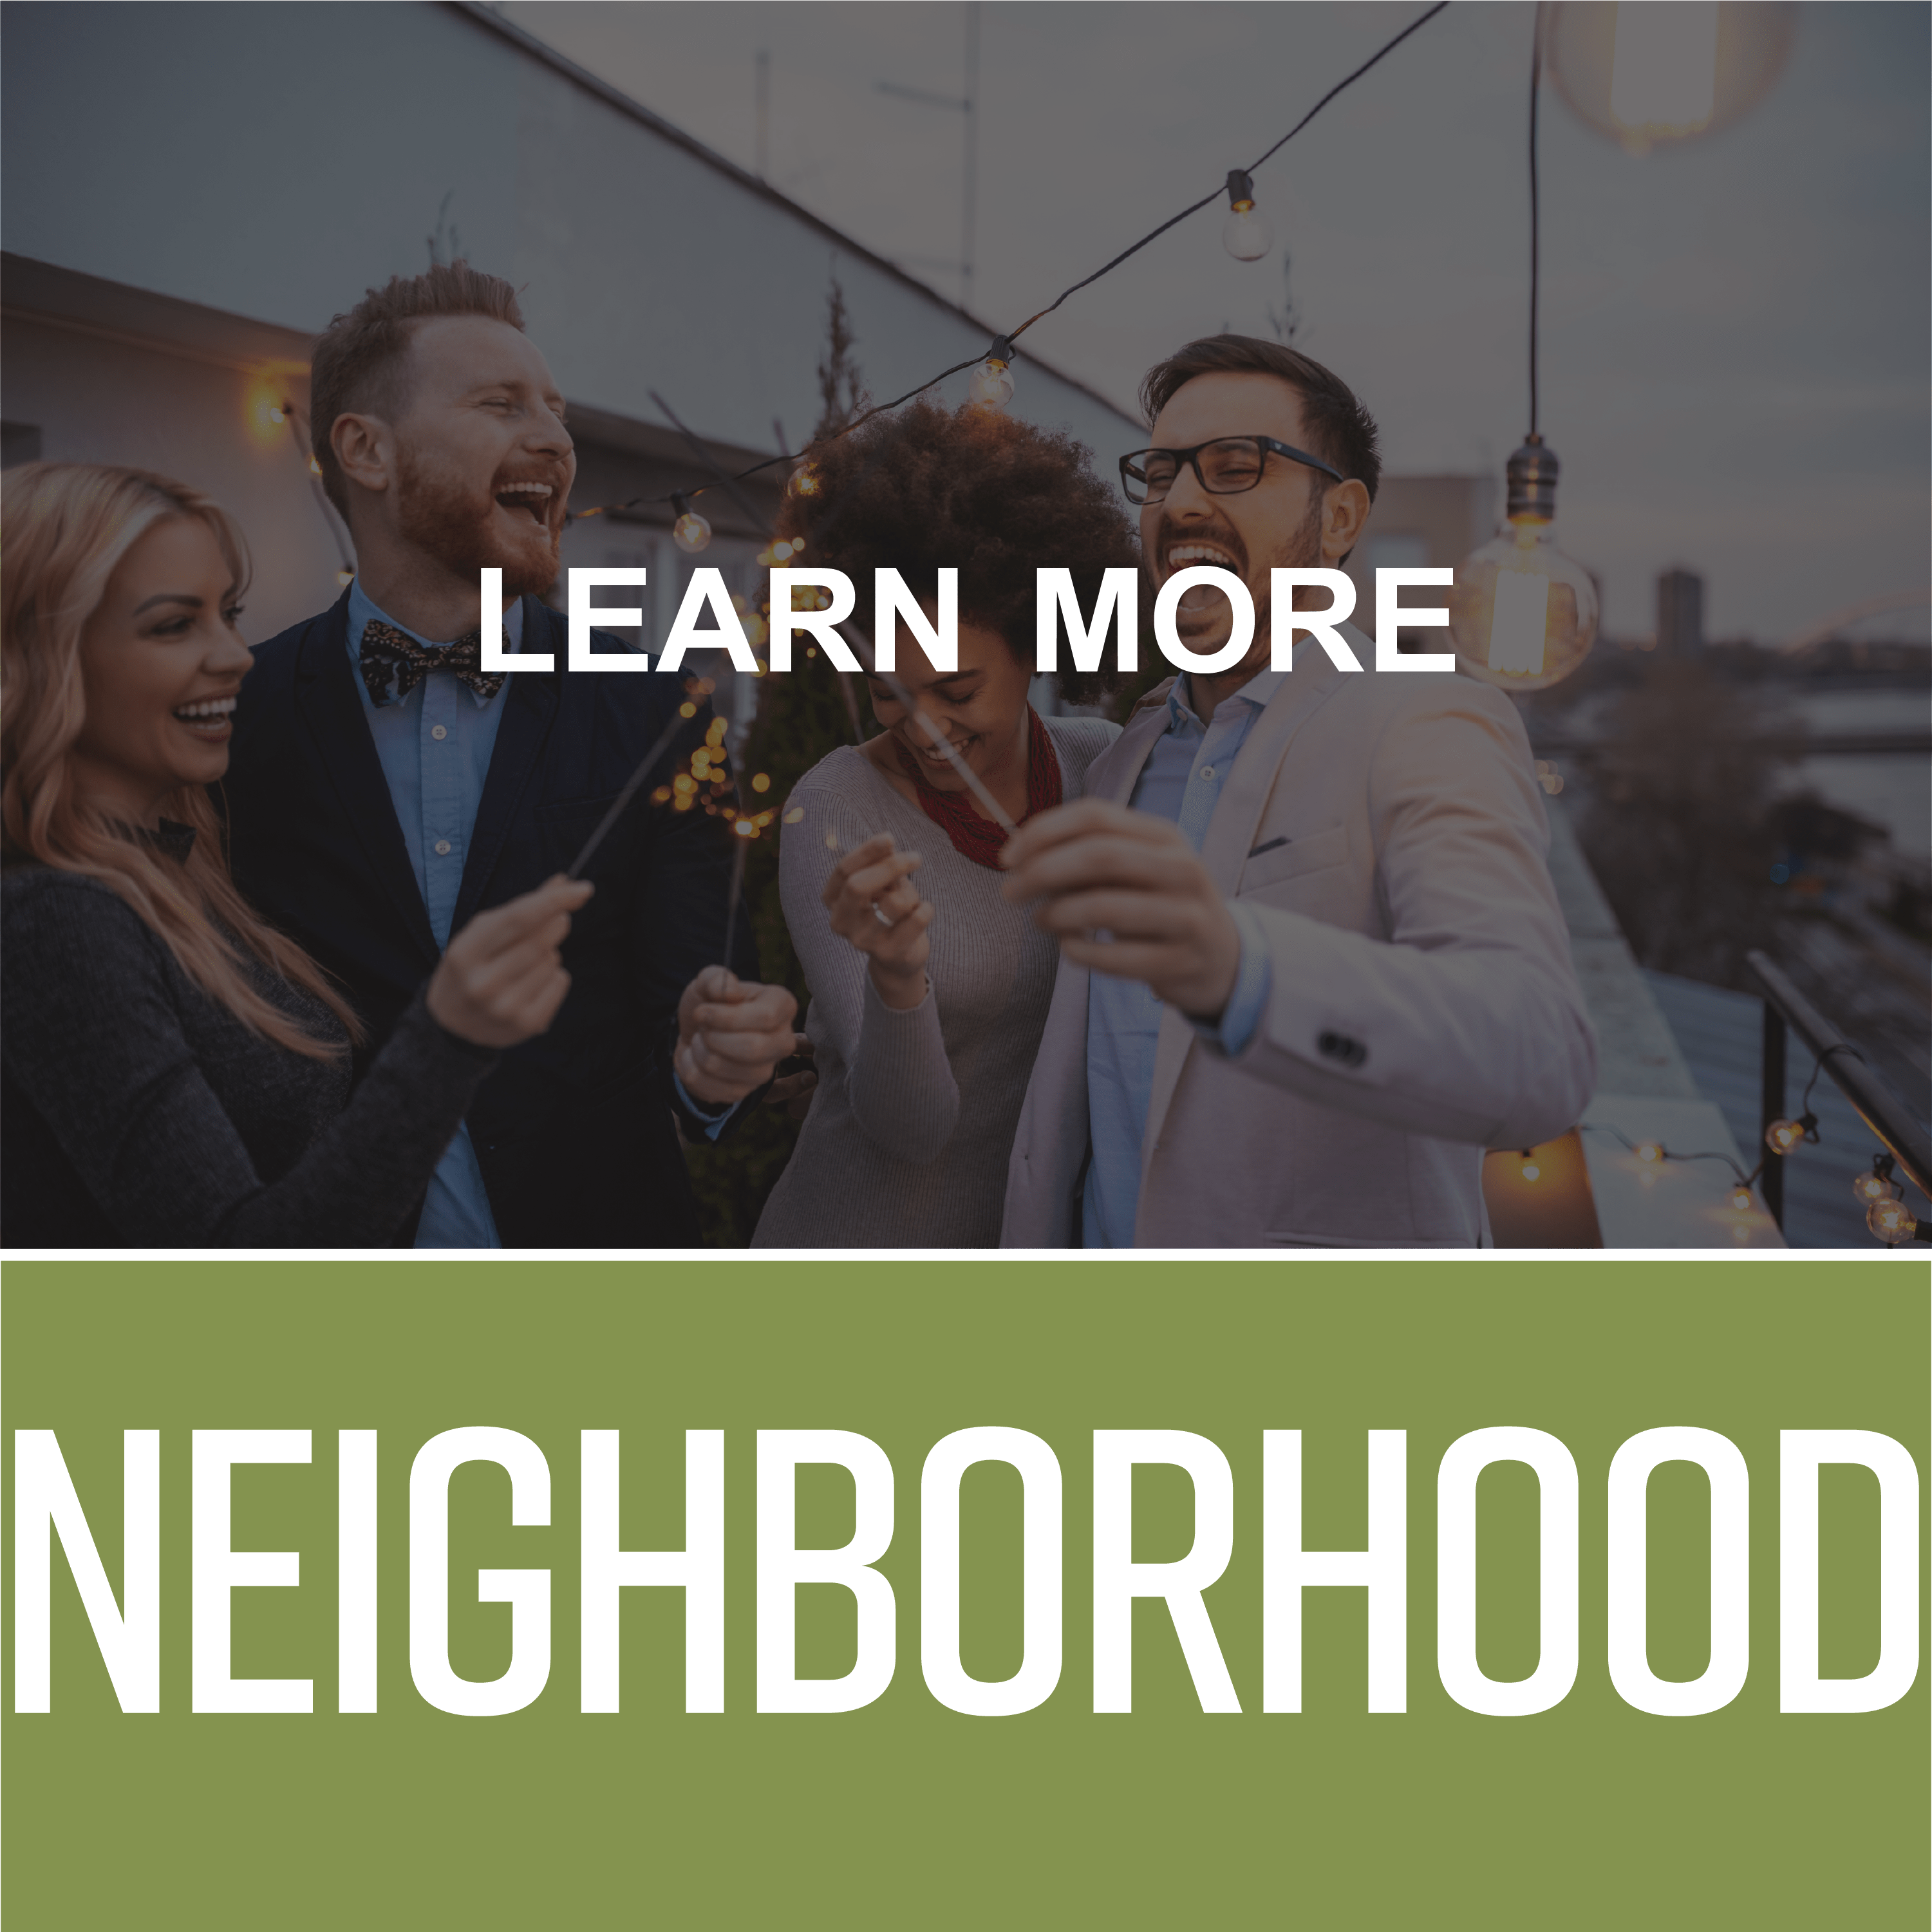 View the neighborhood info at South Block Apartments in Salem, Oregon